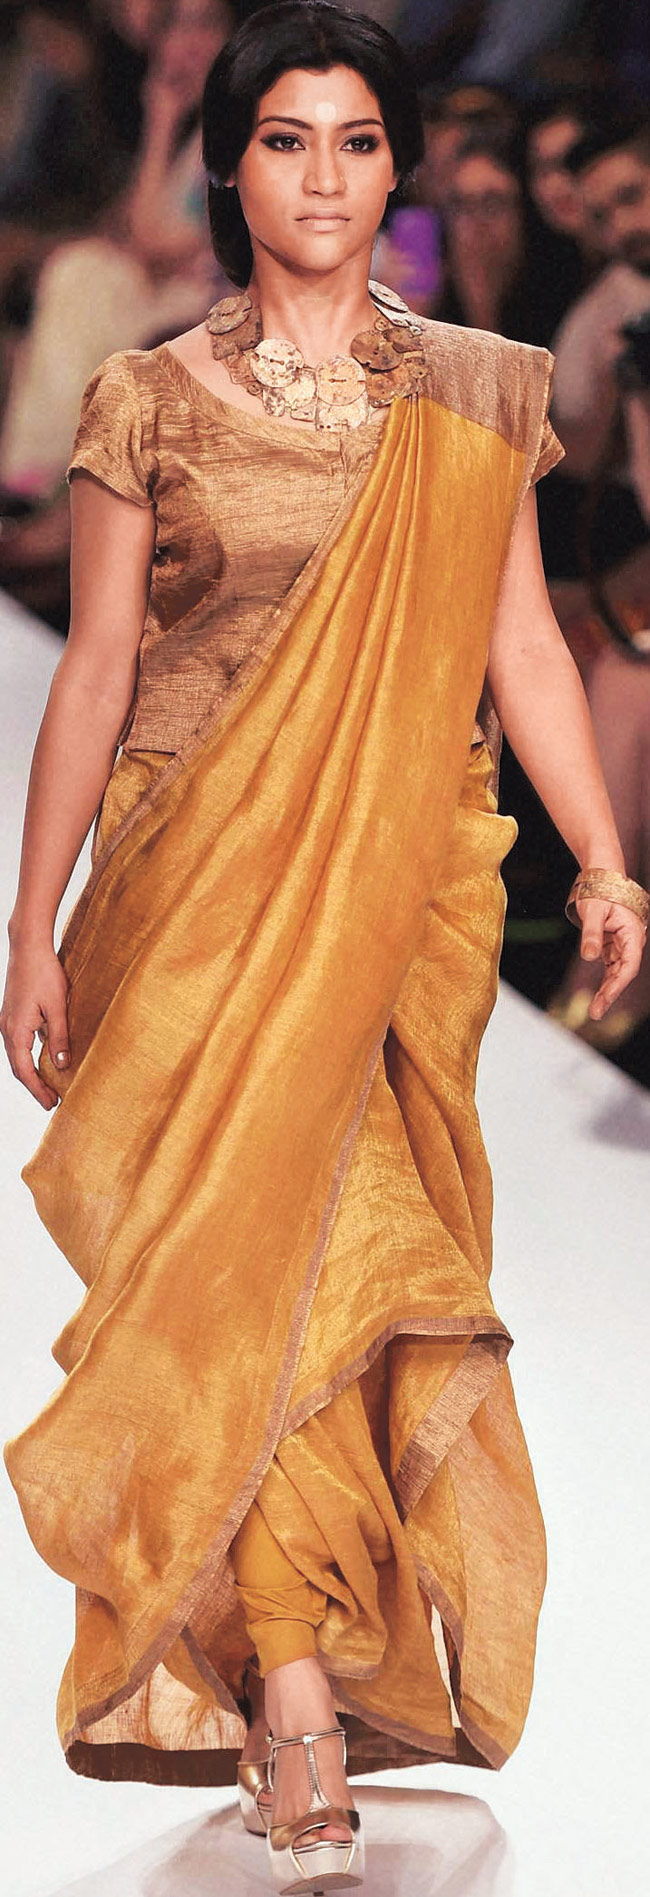 Konkana Sen Sharma walks for designer Anavila Mishra